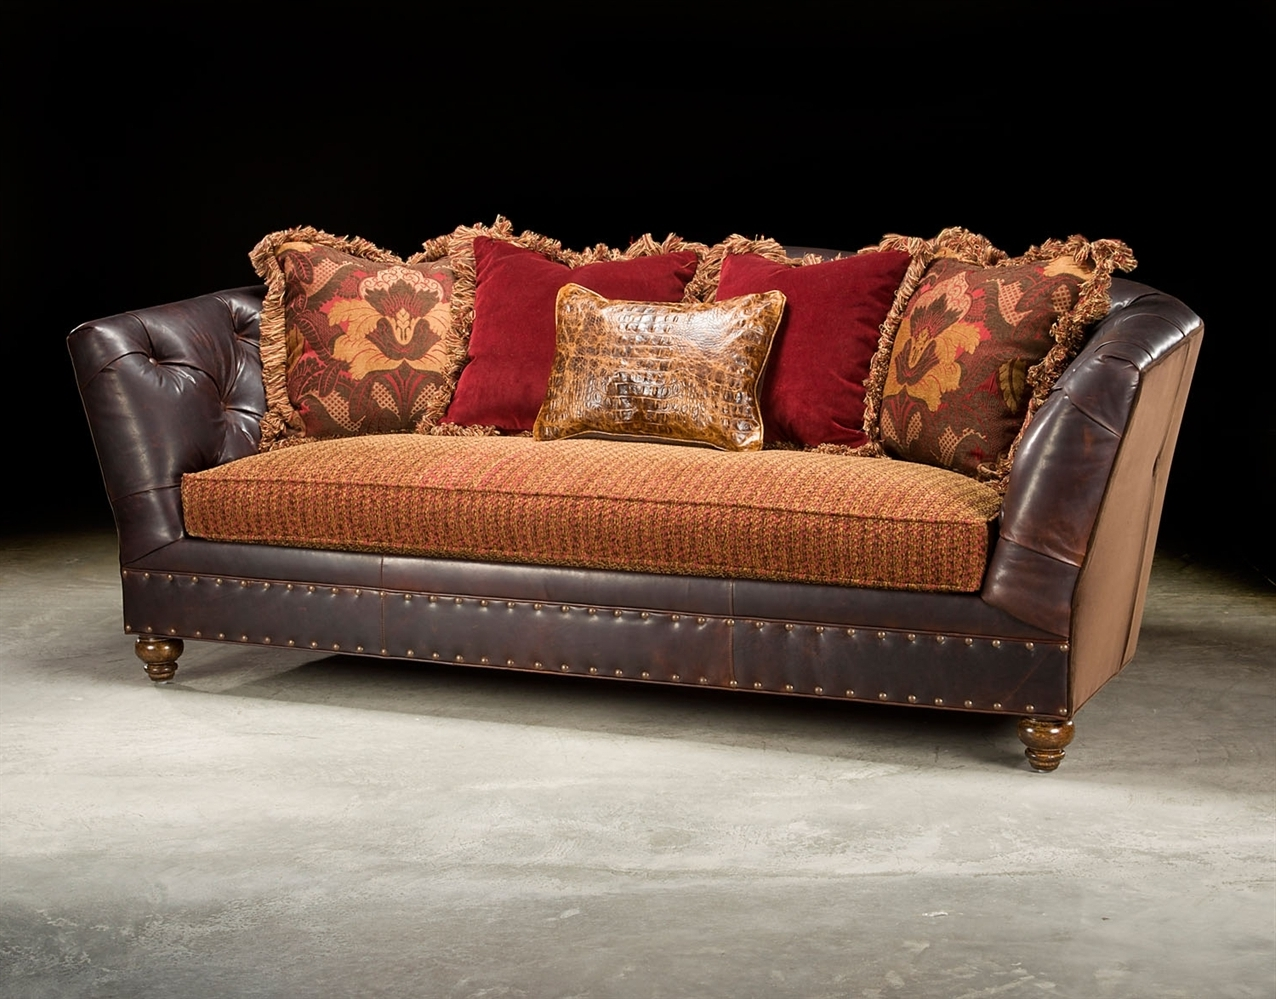 Leather And Cloth Sofas Throughout Most Up To Date Sofa (View 5 of 20)